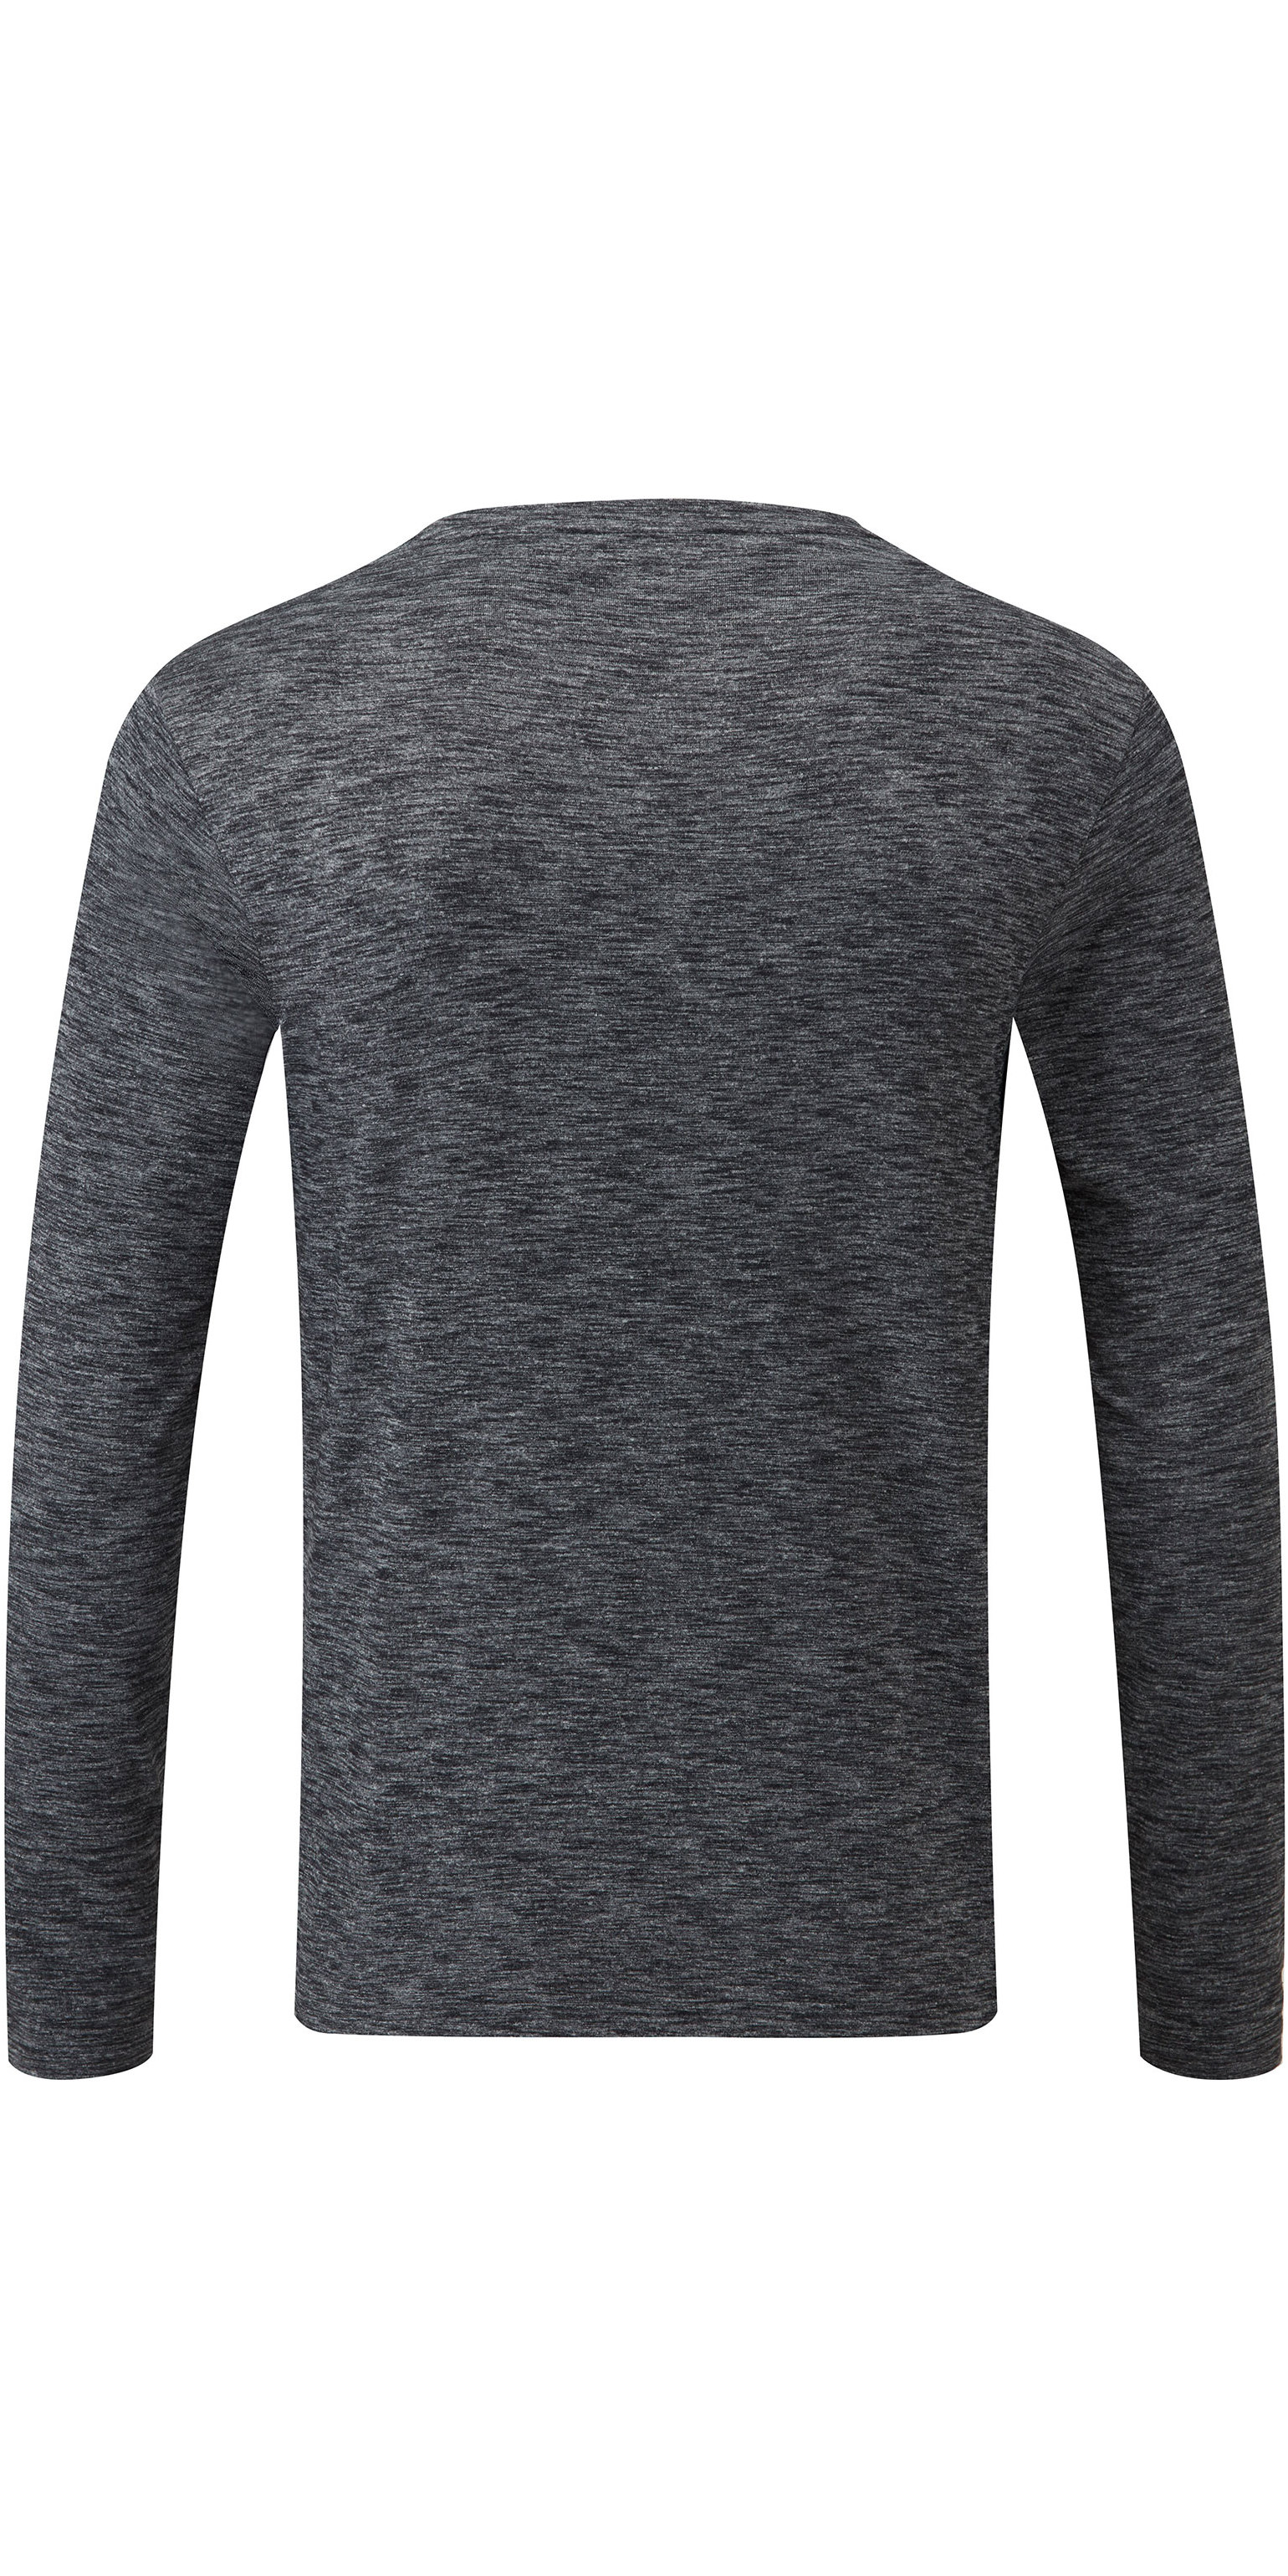 2019 Gill Hombres Holcombe Crew Base Layer Charcoal 1100